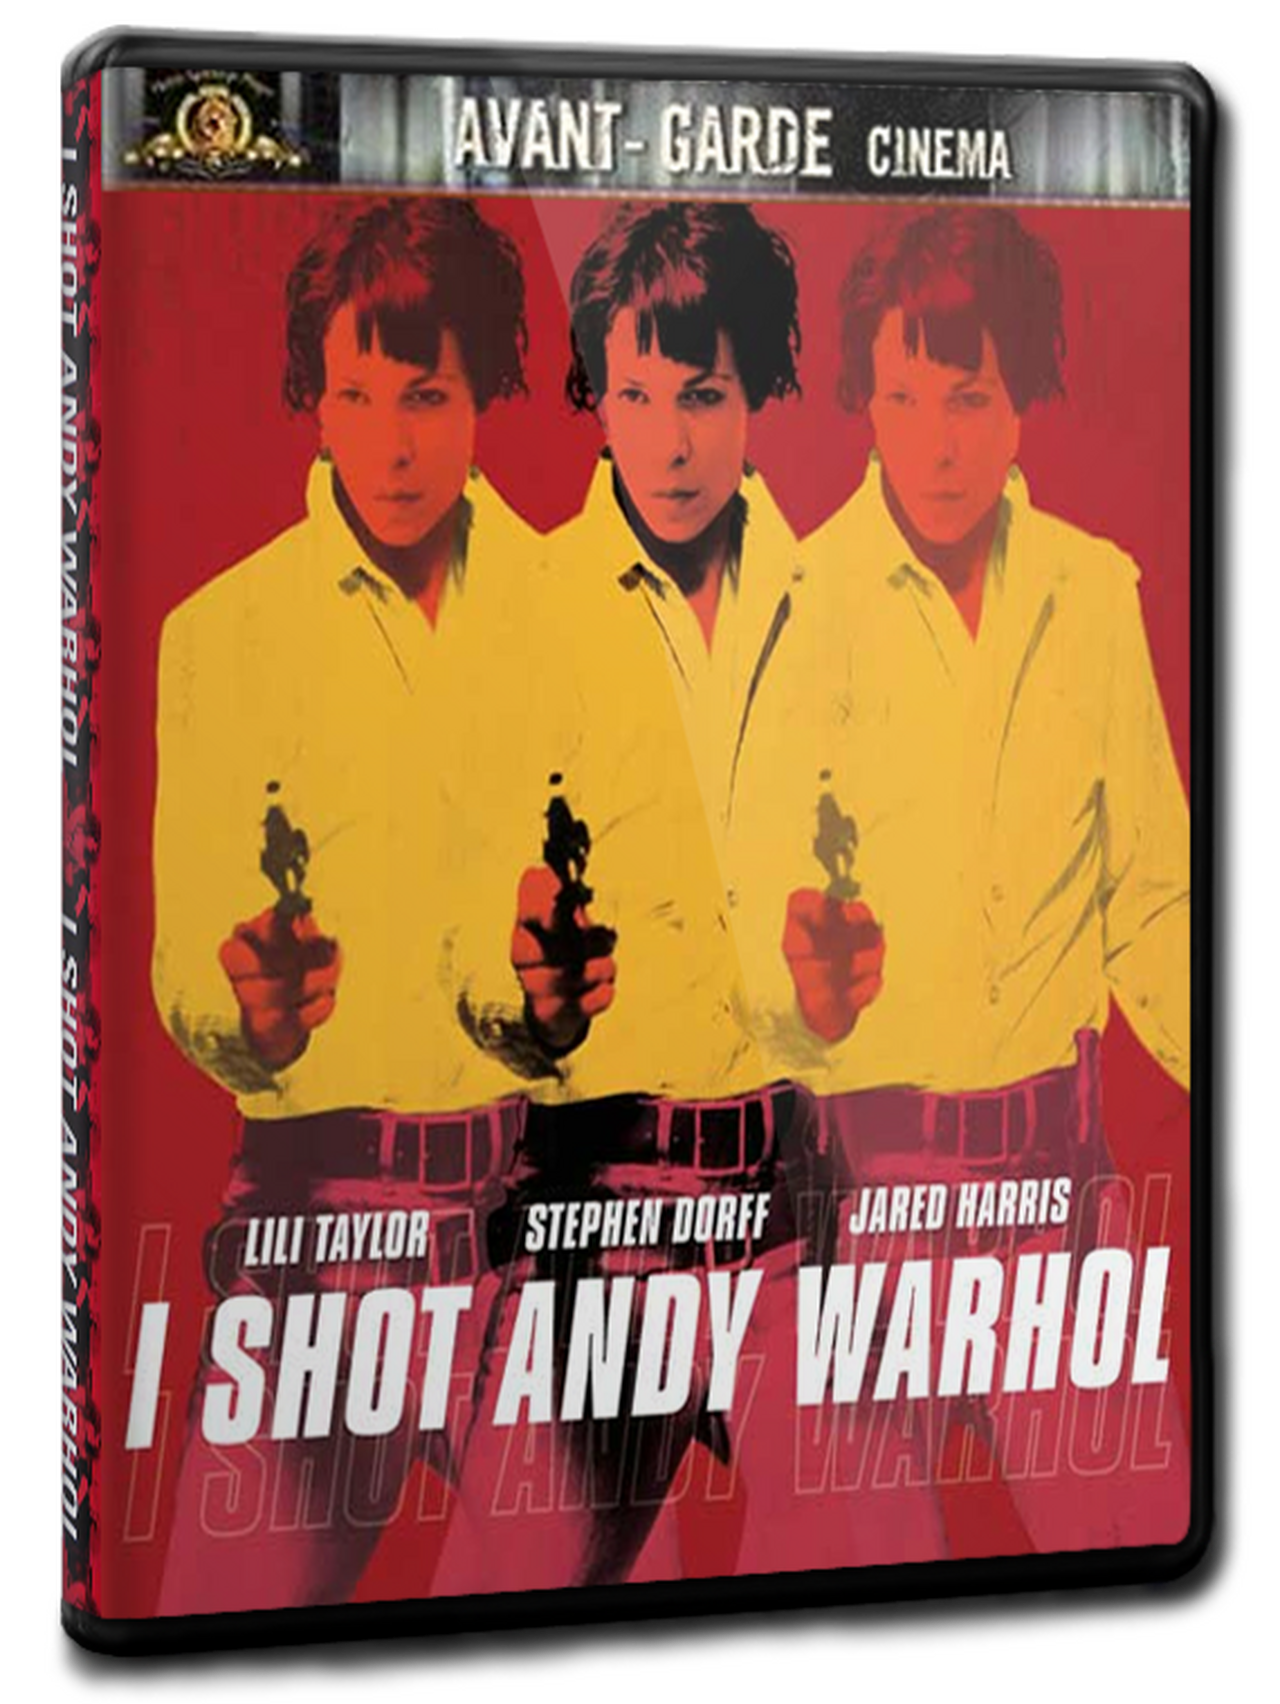 an analysis of the movie i shot andy warhol directed by mary harron Find out everything empire knows about mary harron  features and to analyse  traffic to the site (including the use of ad blockers)  for her films i shot andy  warhol, american psycho and the notorious bettie page  back in early 2012,  news first arrived that away from her director sarah   this film is not yet  rated.